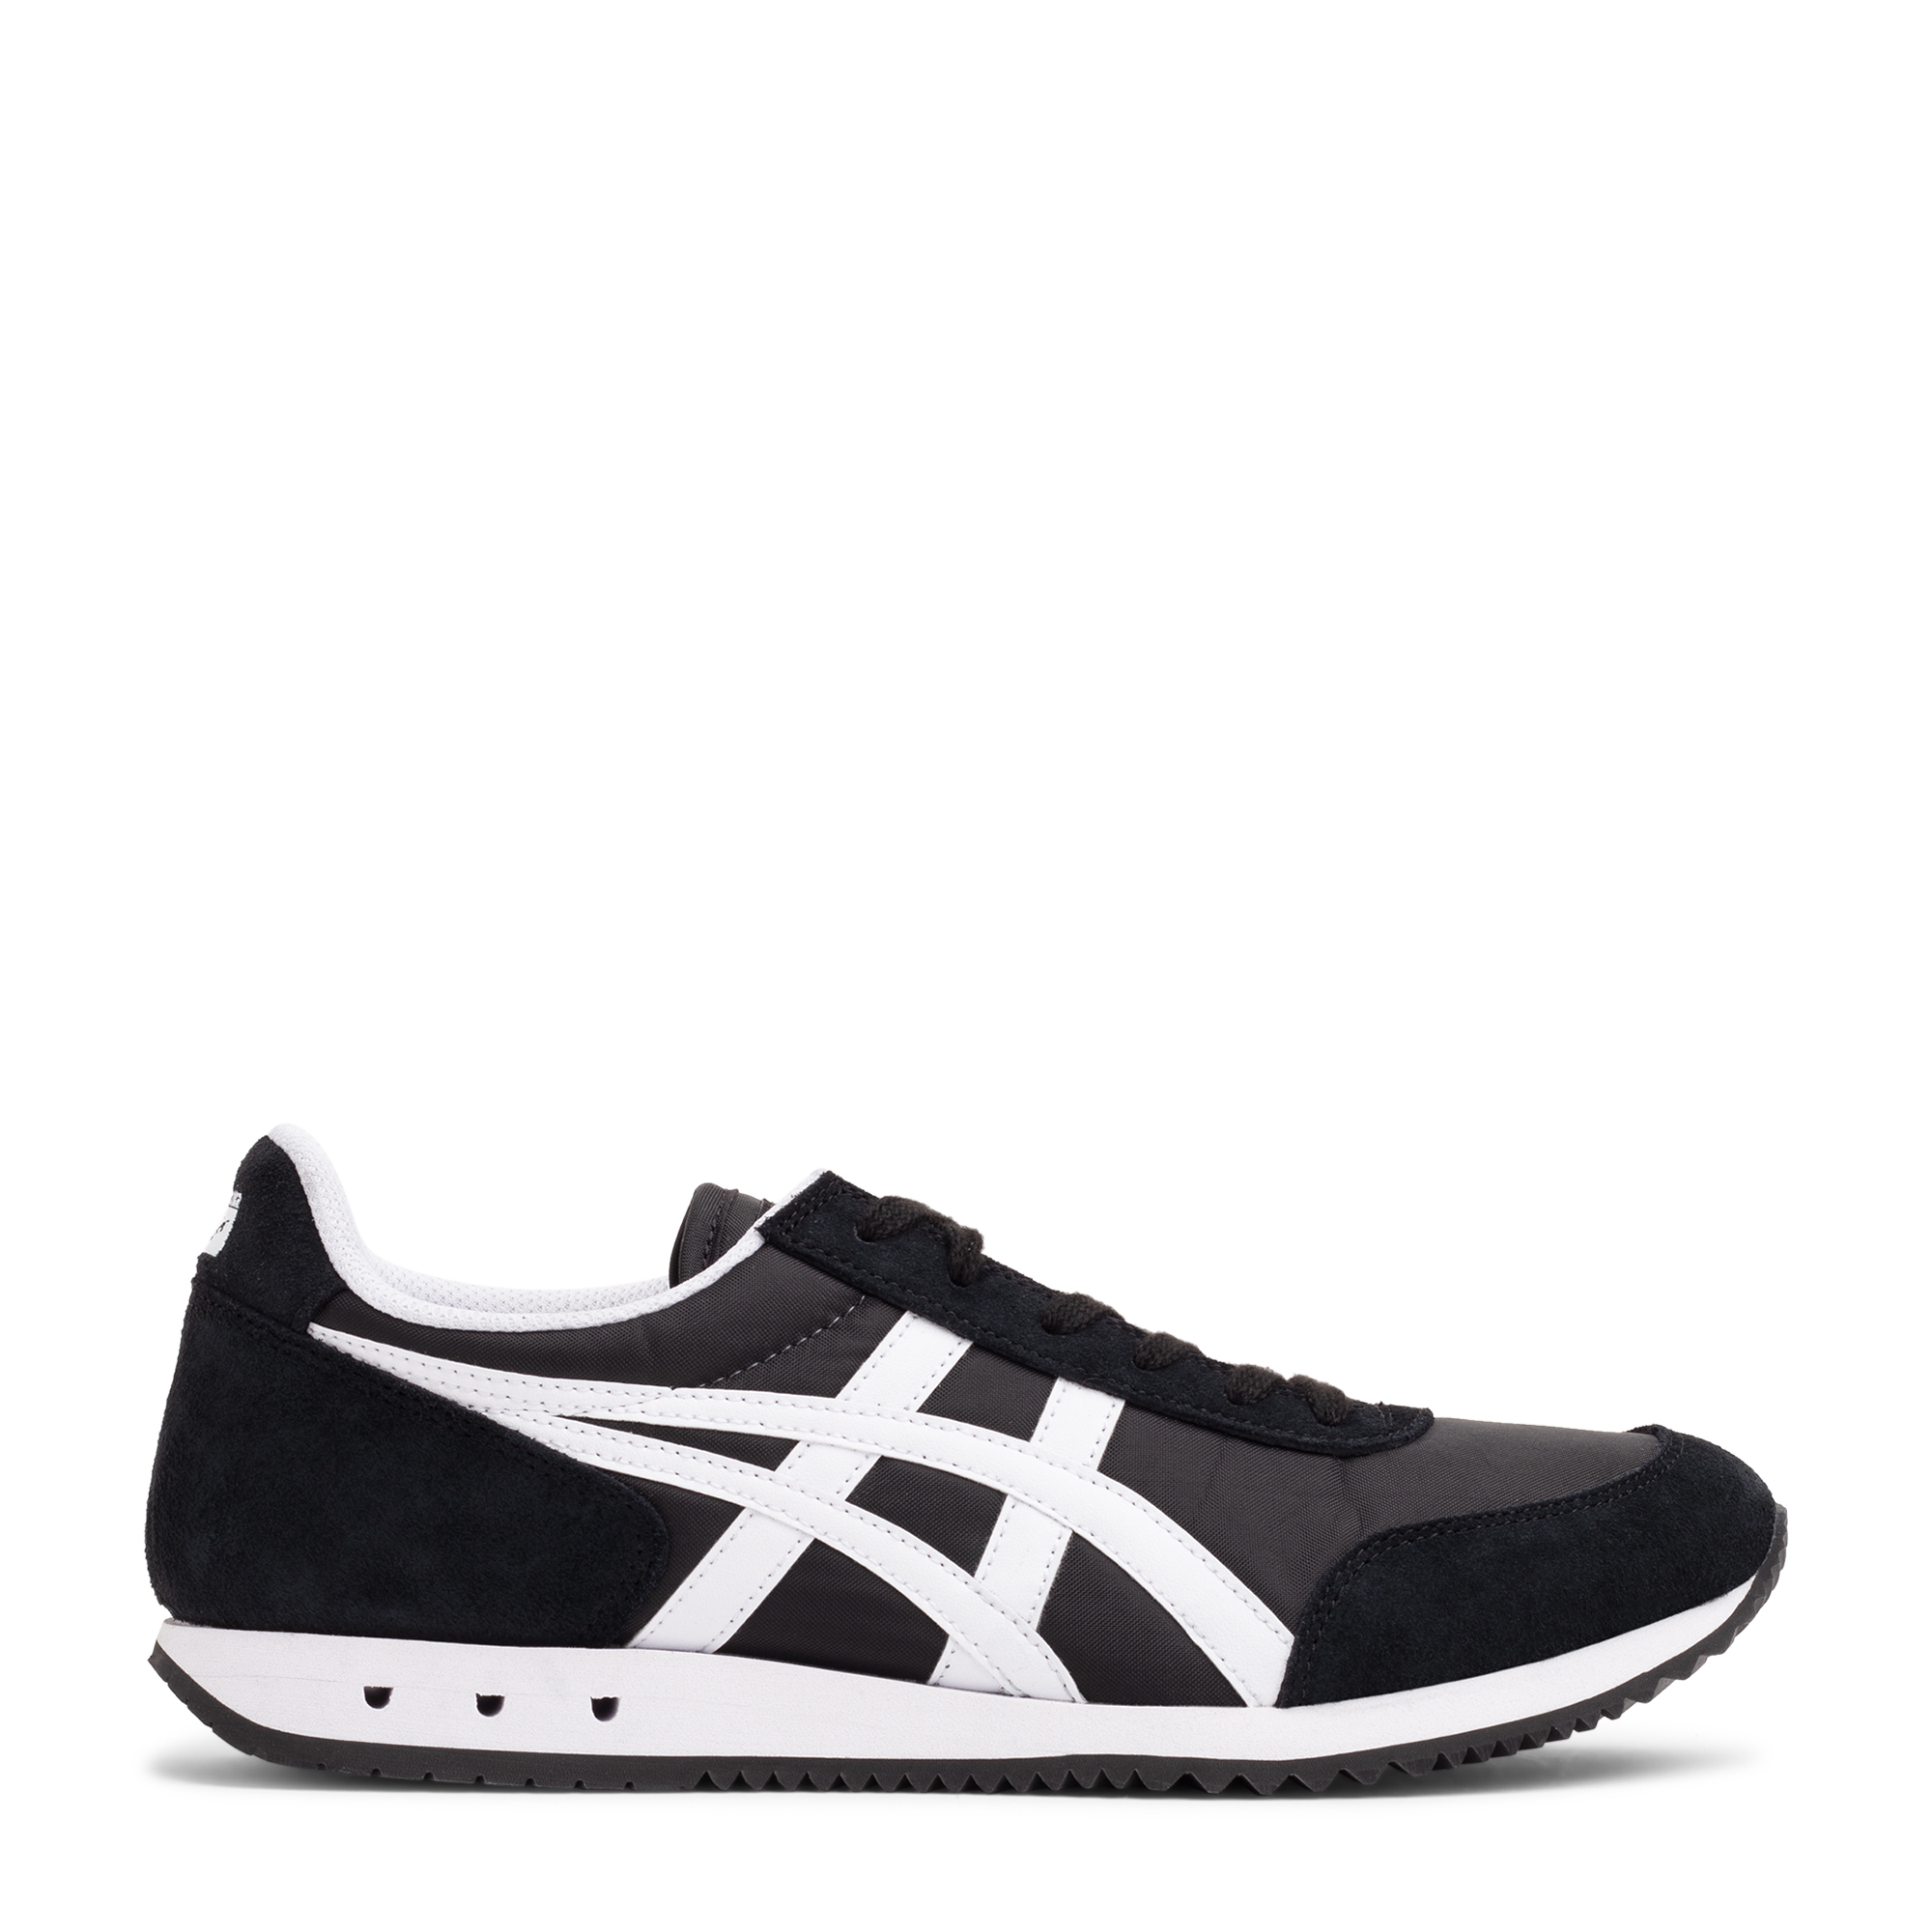 New York lace-up sneakers